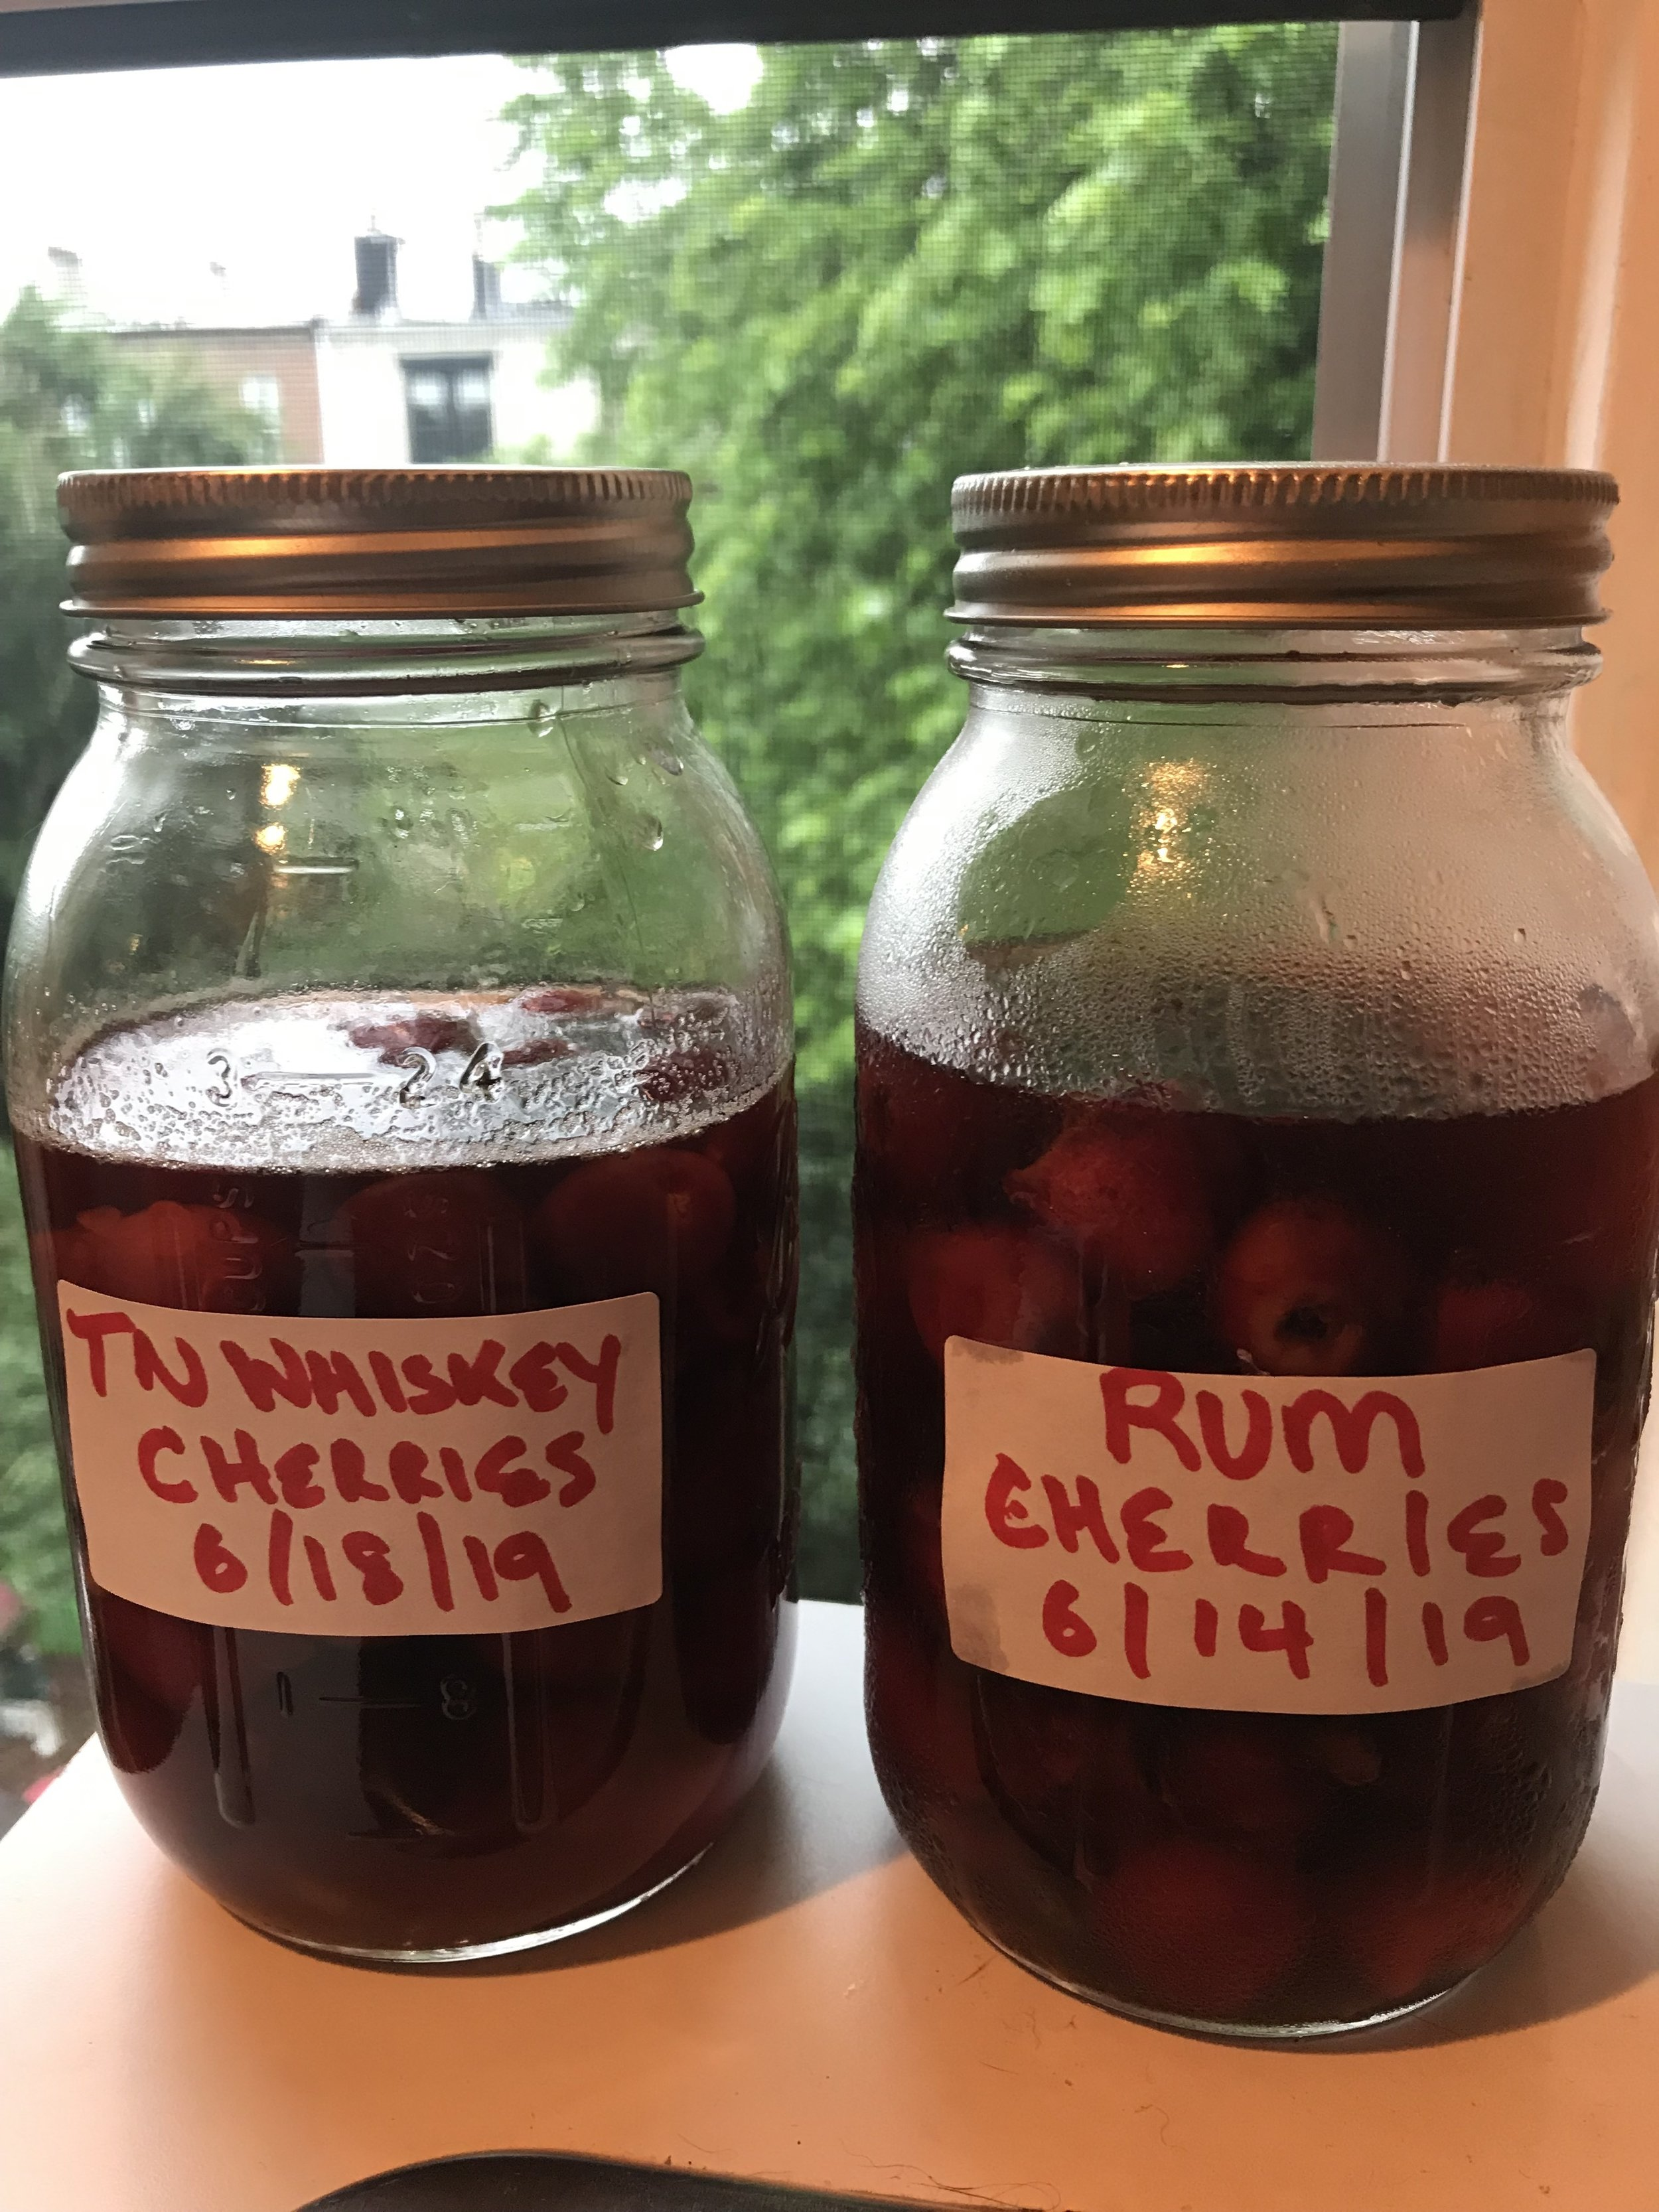 Rainy summer days are the perfect excuse to jar those cherries! Photo by Amanda Schuster